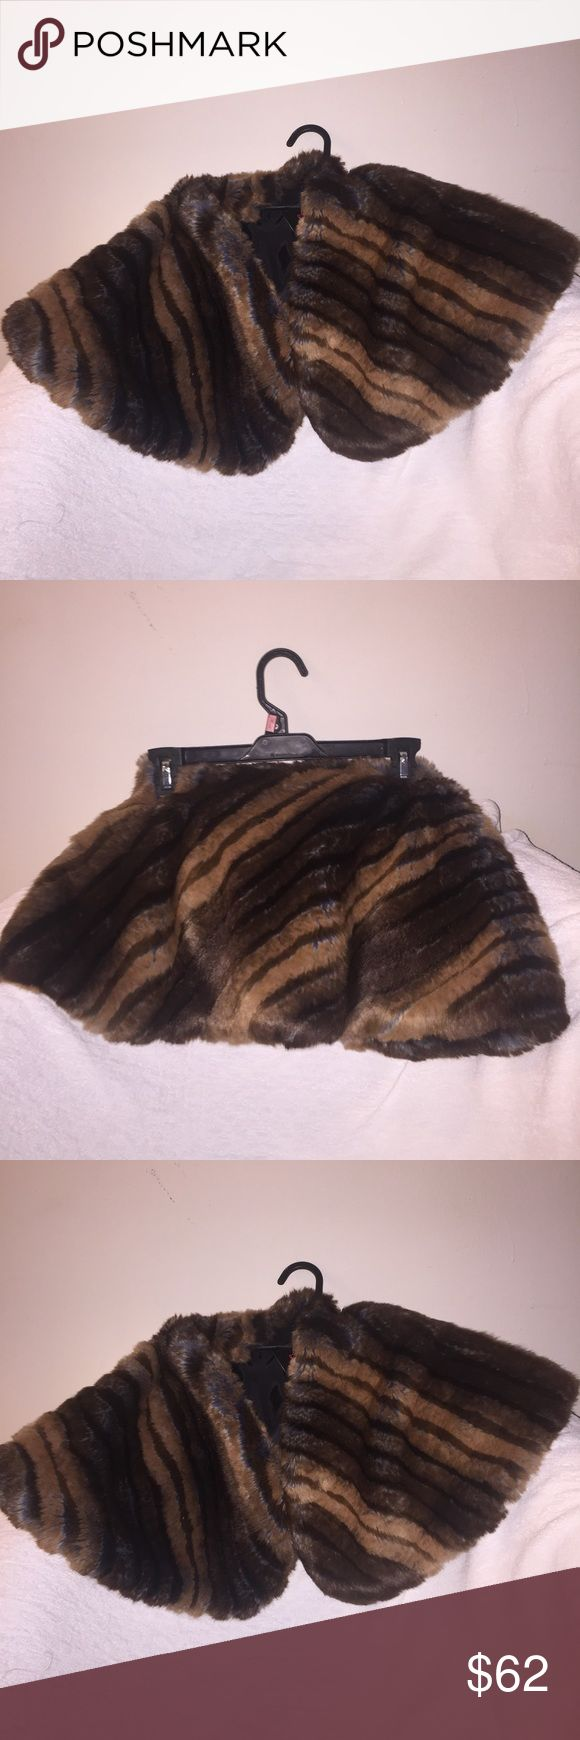 Kyi Kyi Faux Fur Bolero New With Tag Can be worn on top of a dress and more Jackets & Coats Vests